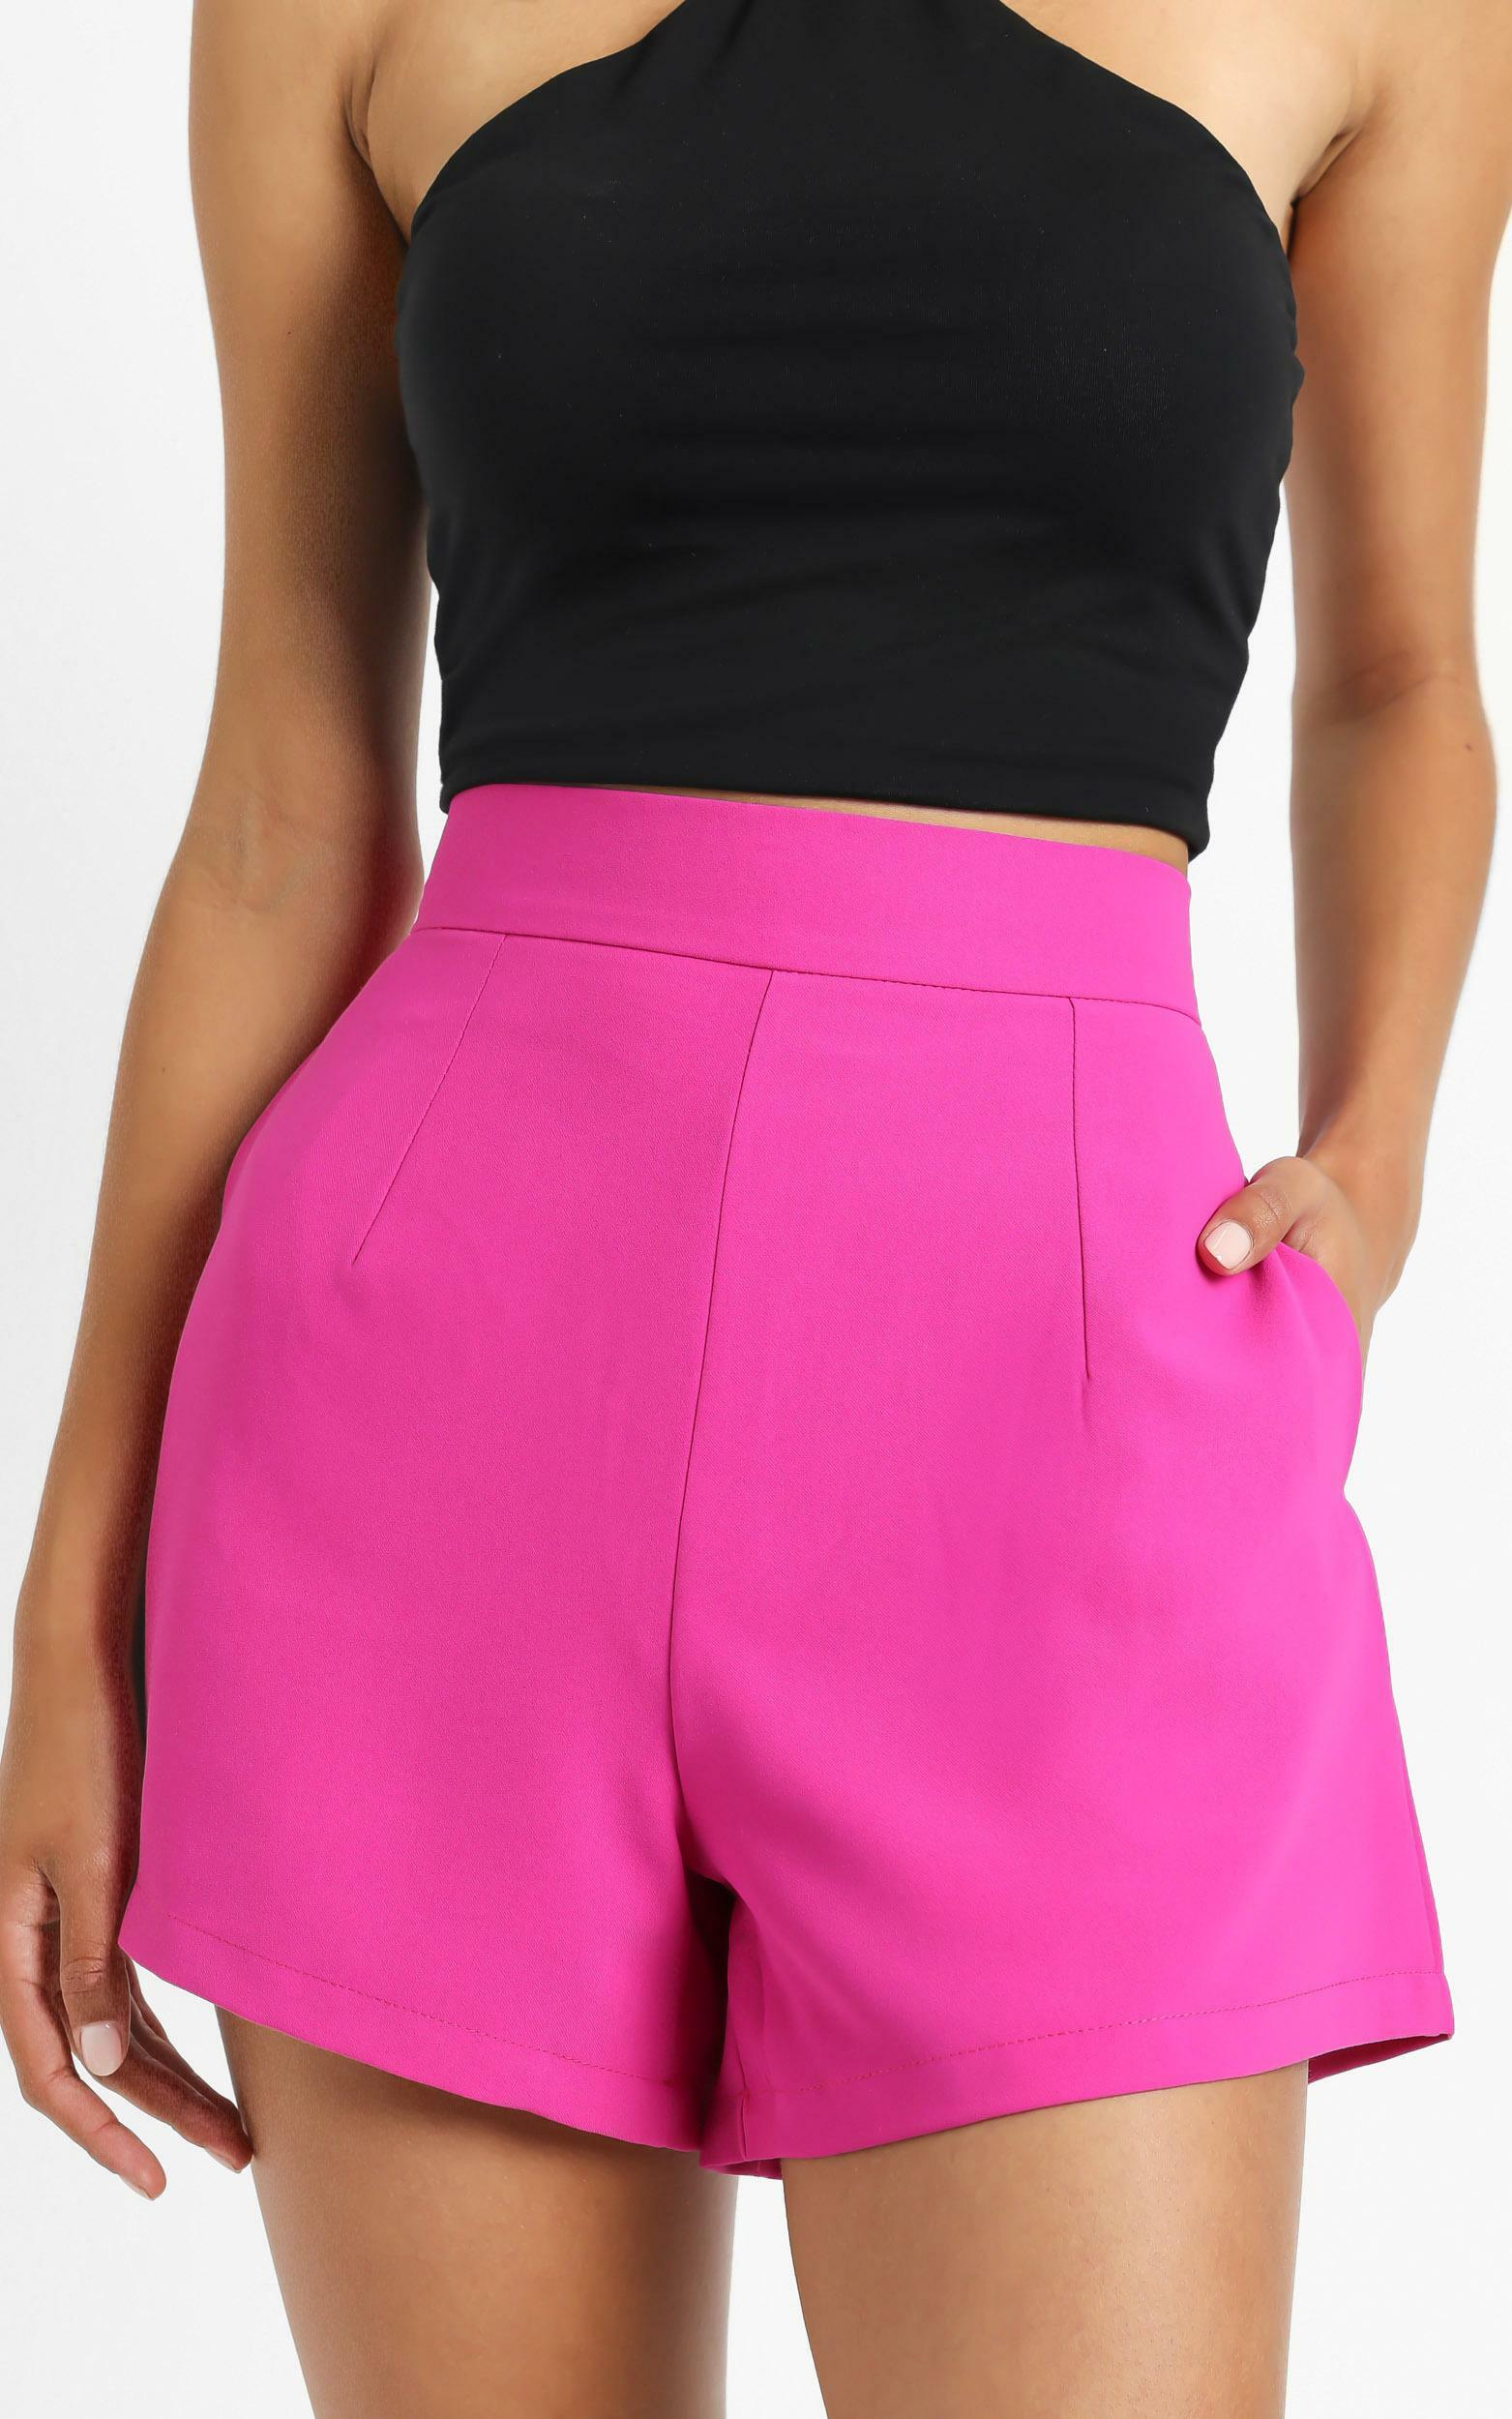 Along The Ride Shorts in Hot Pink - 6 (XS), PNK11, hi-res image number null